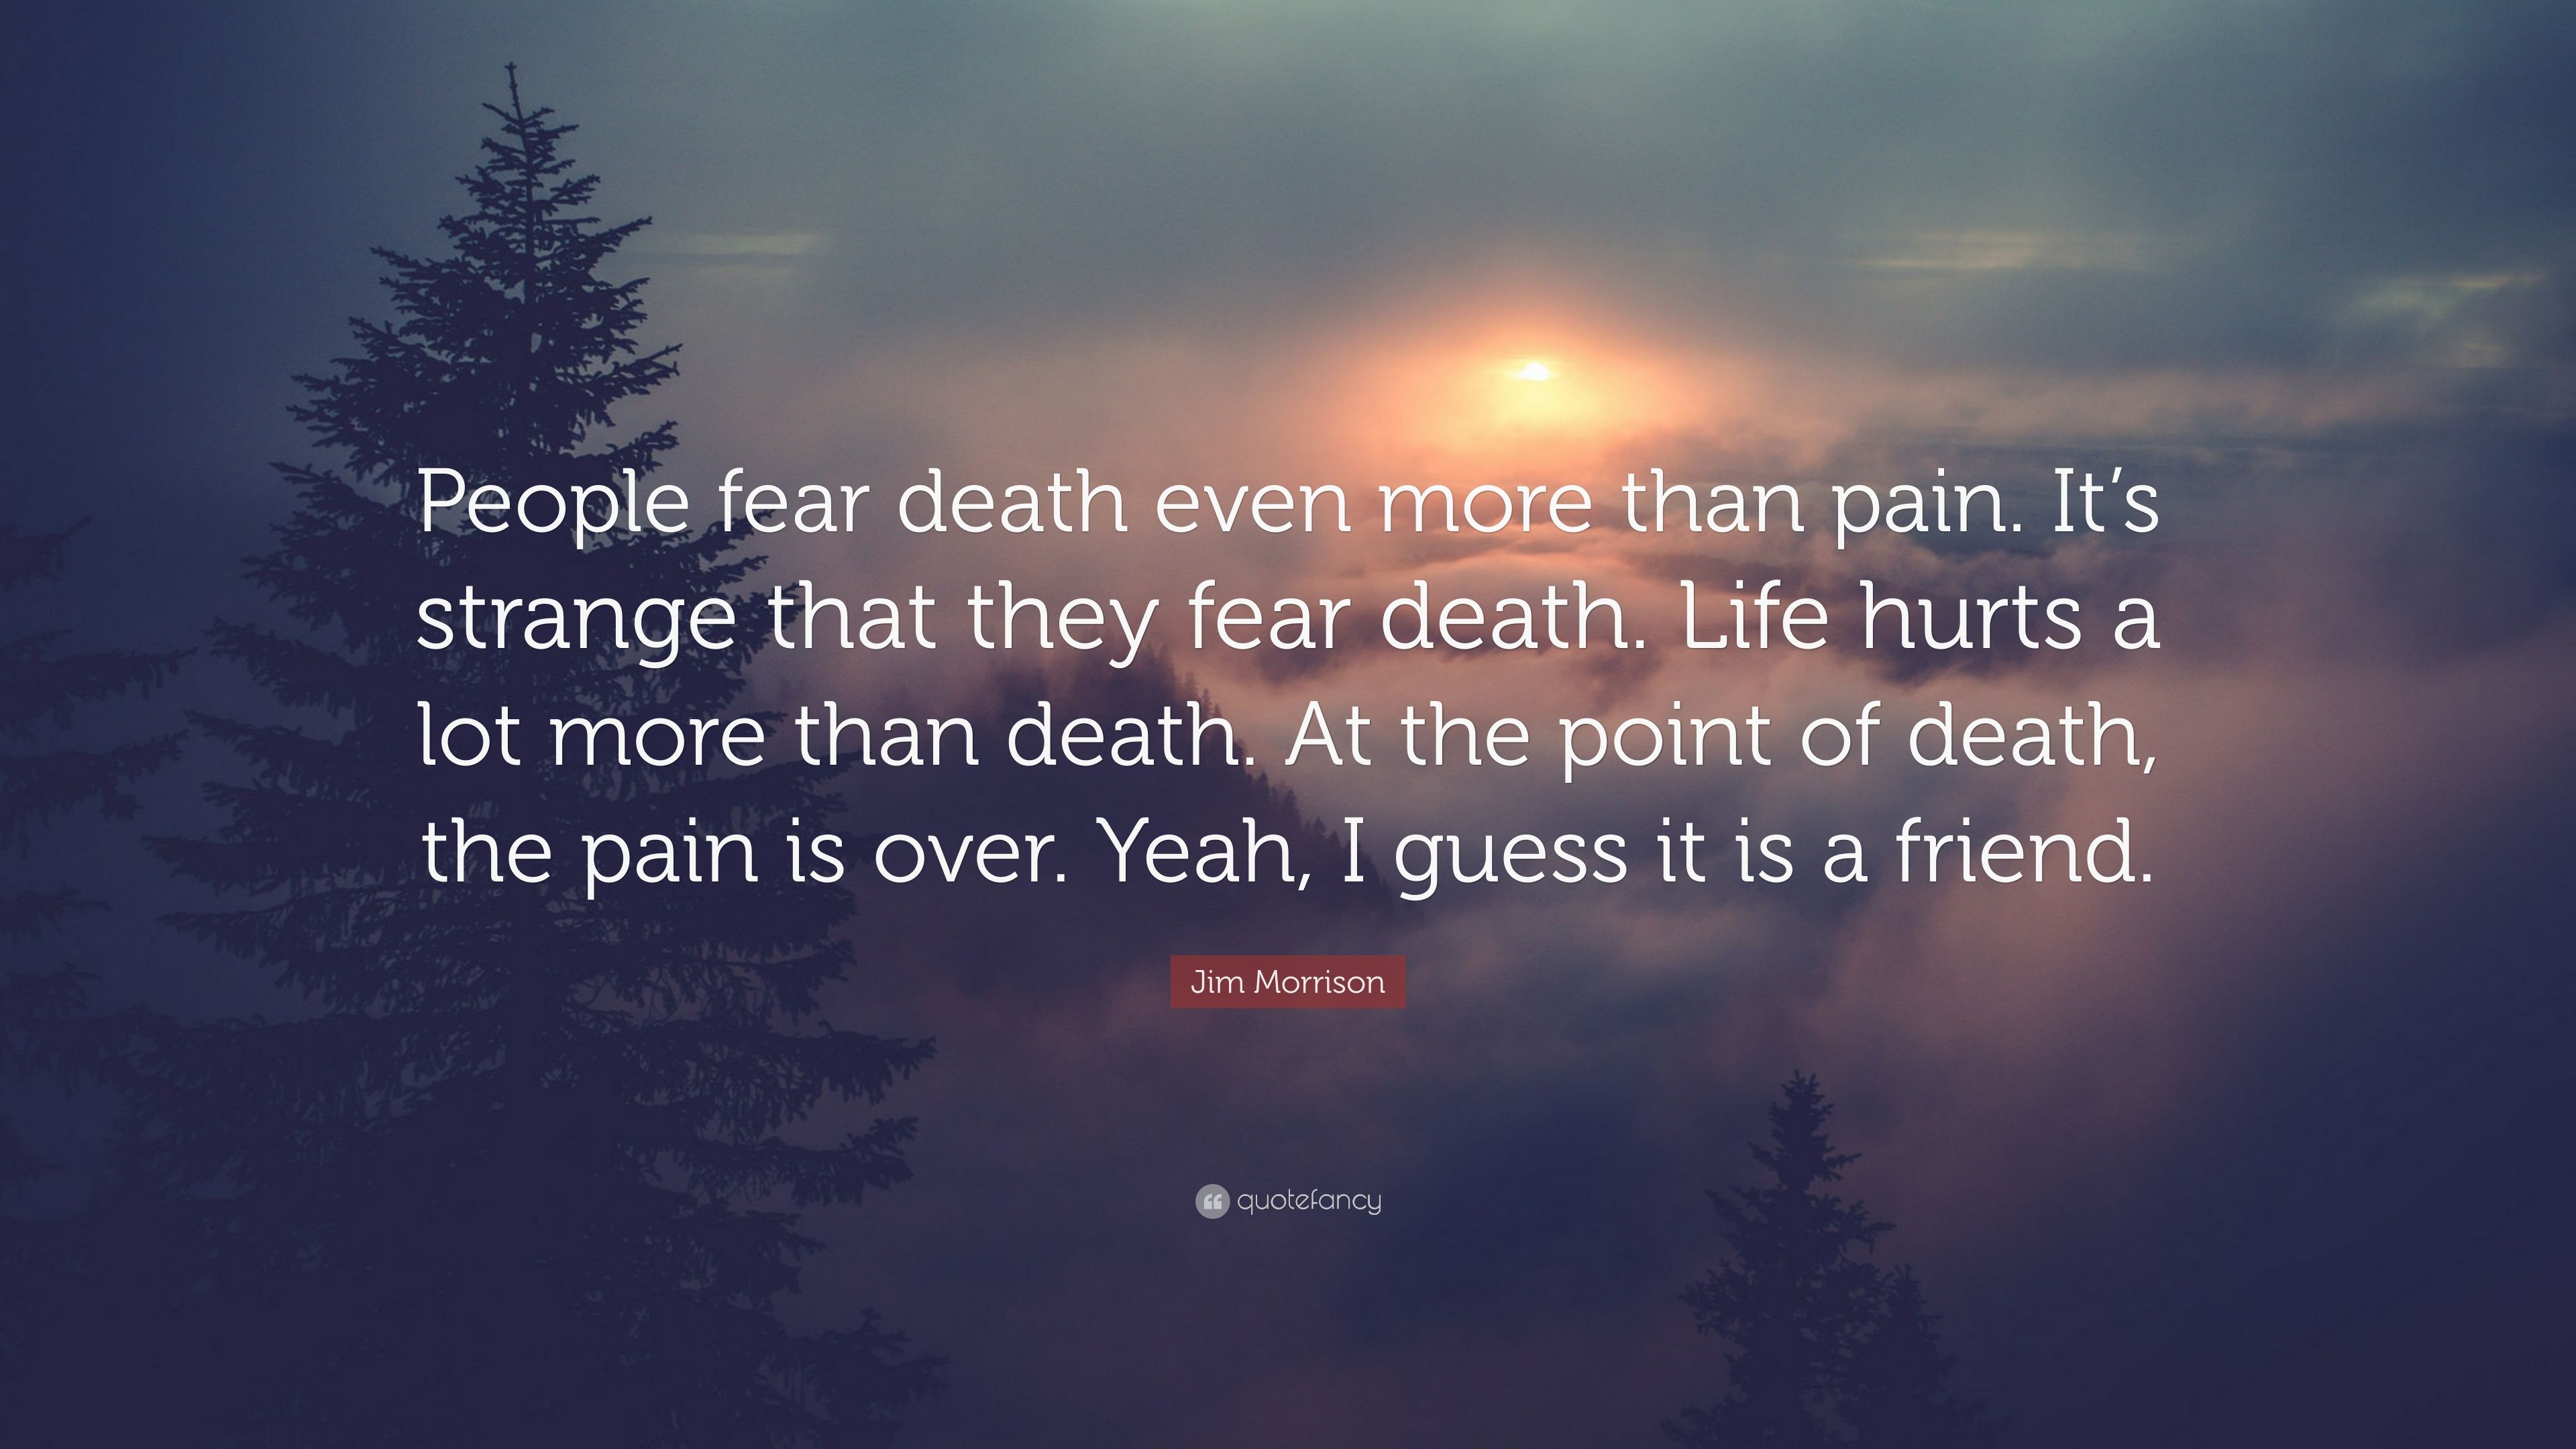 Why do people fear death